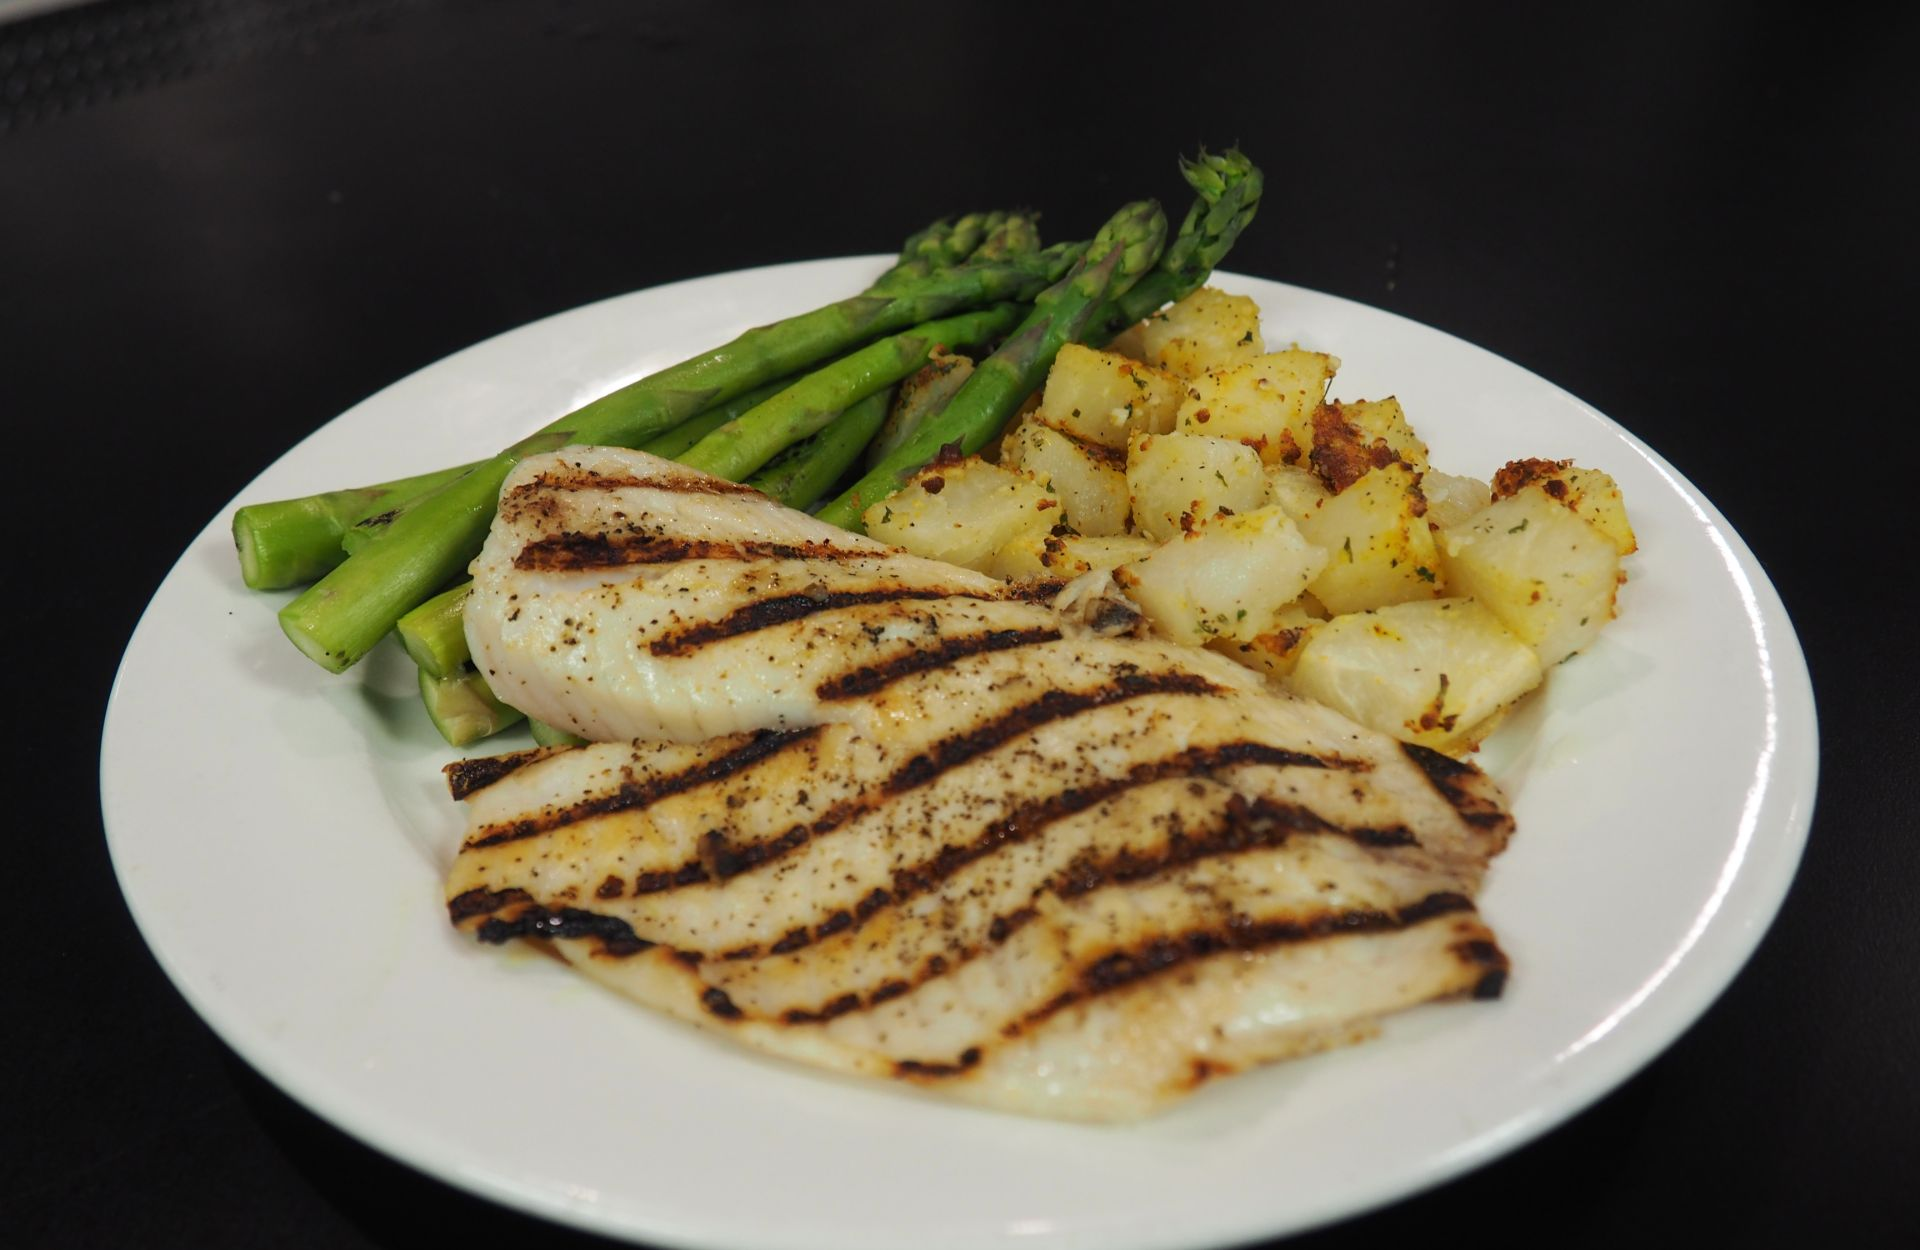 Grilled cod fillets with asparagus and potatoes